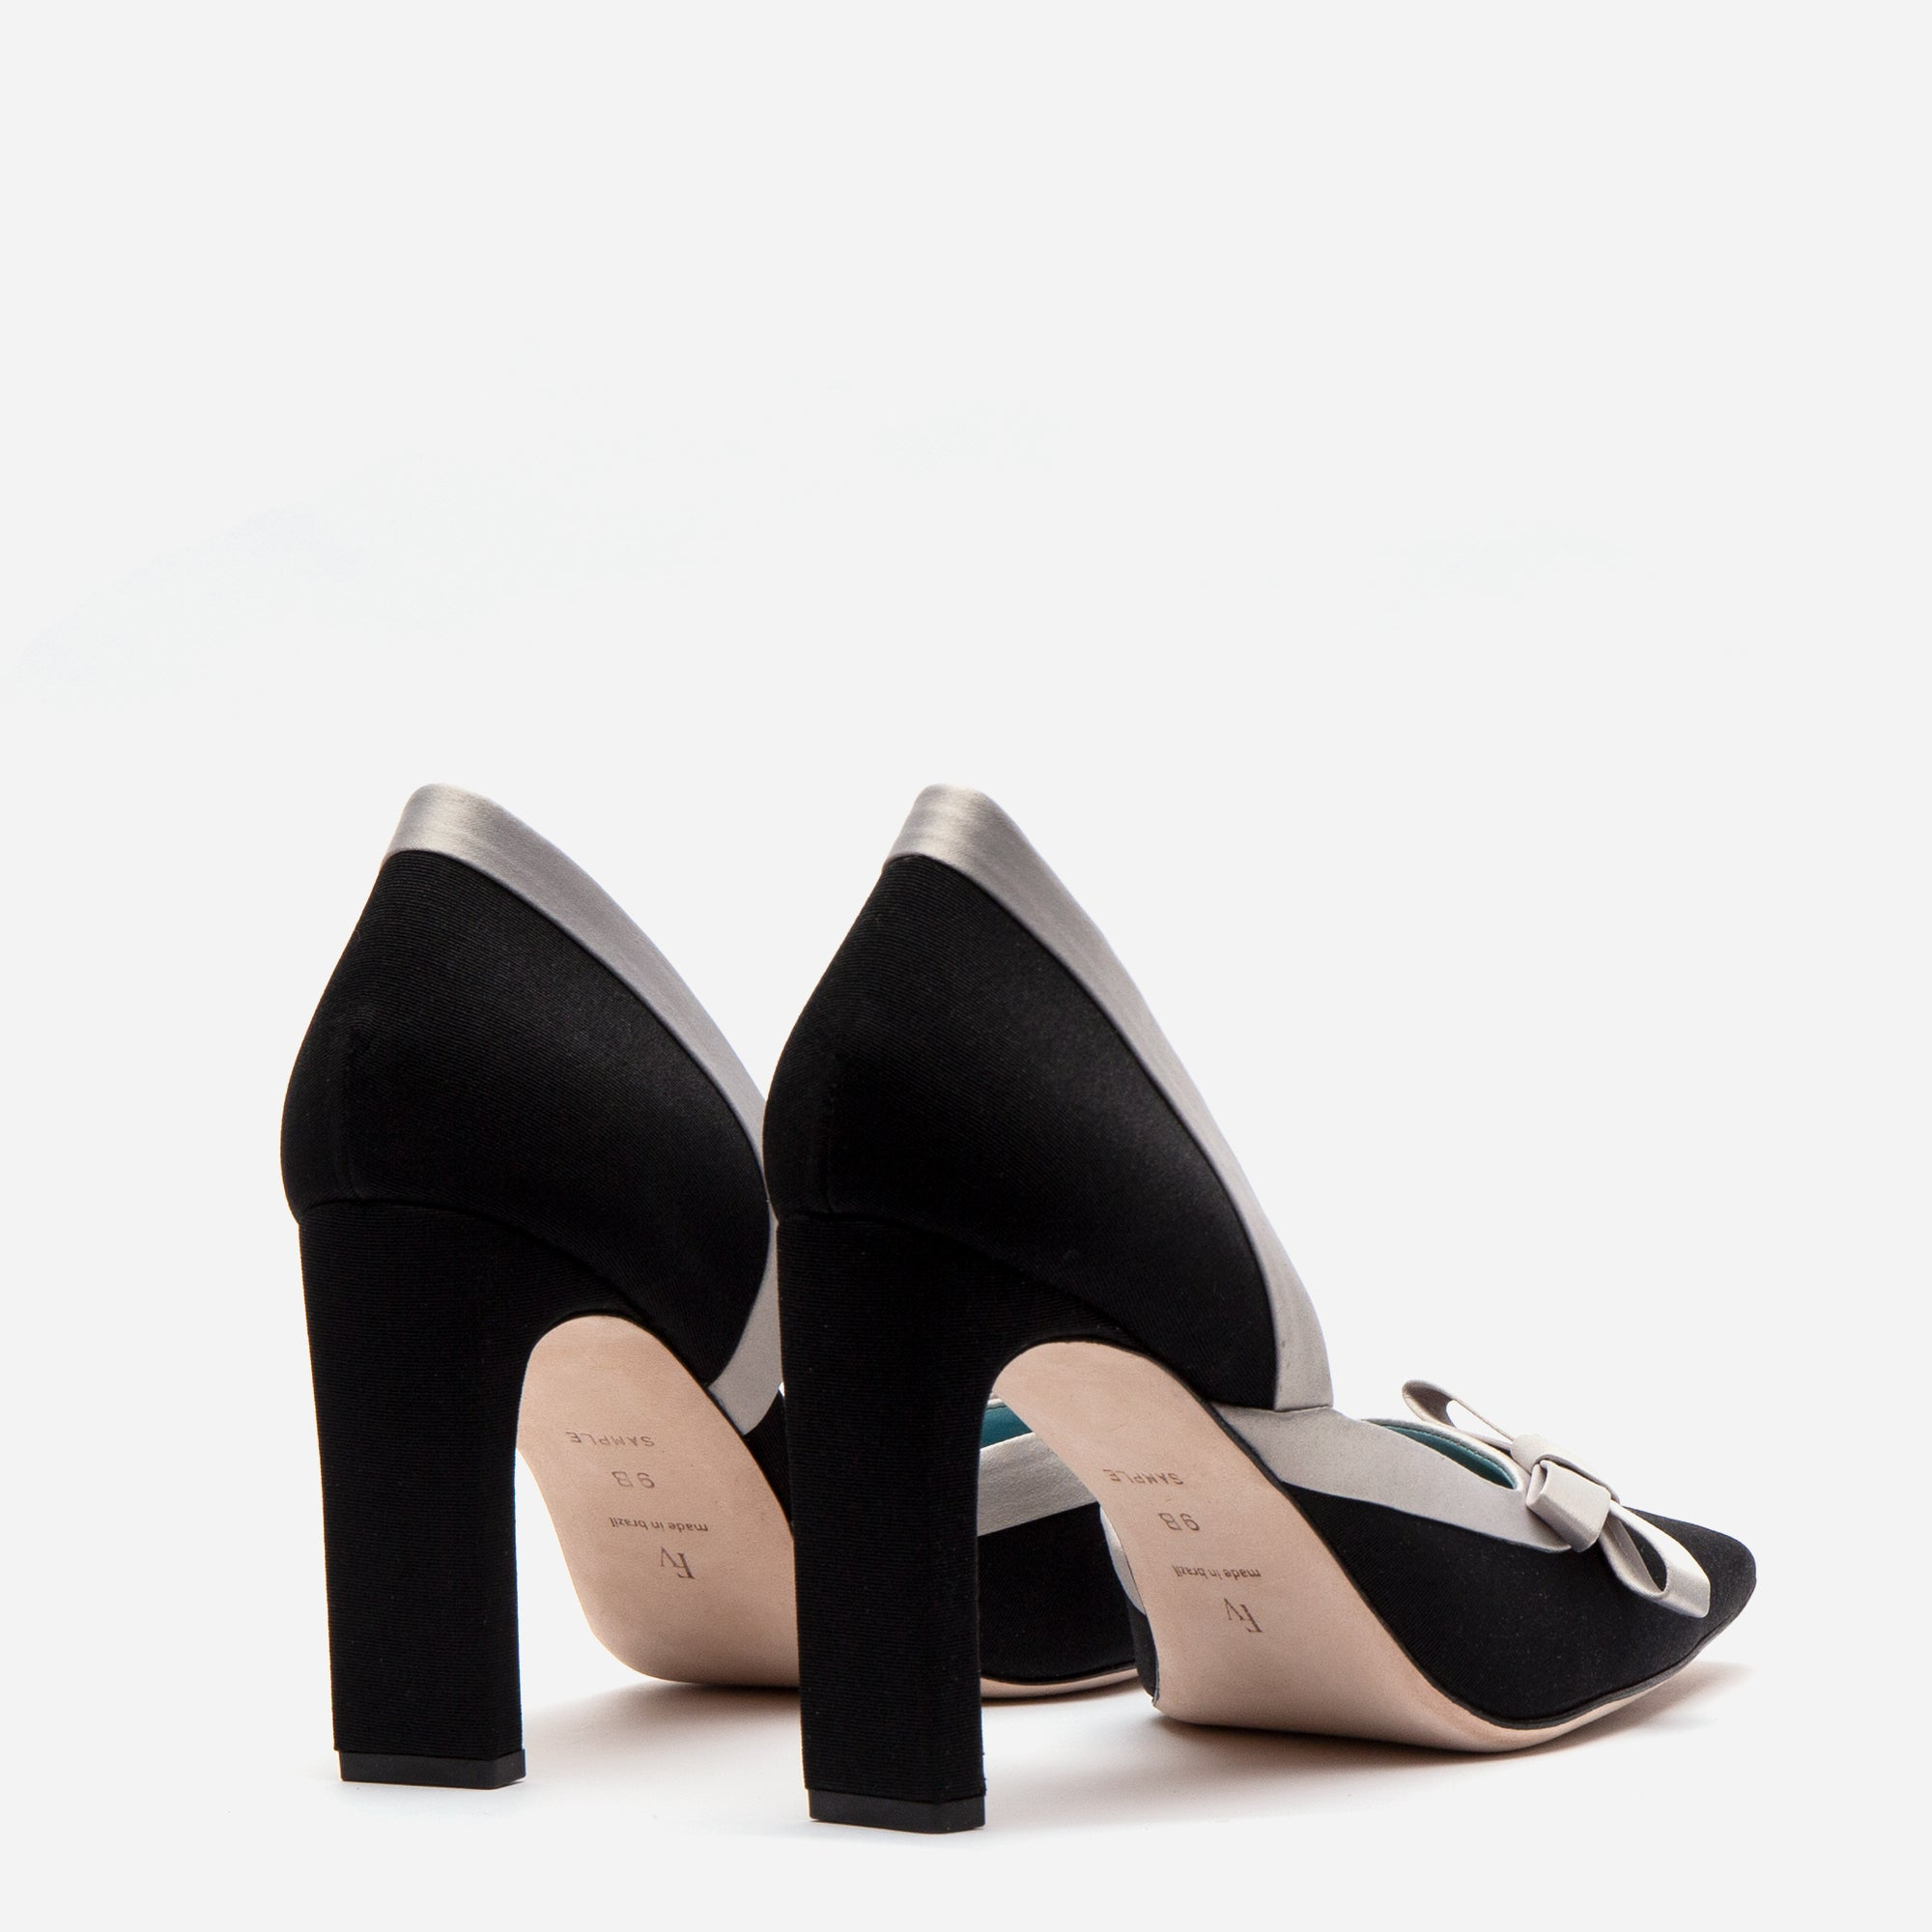 Sinclair Grosgrain Satin Heels Black Oyster